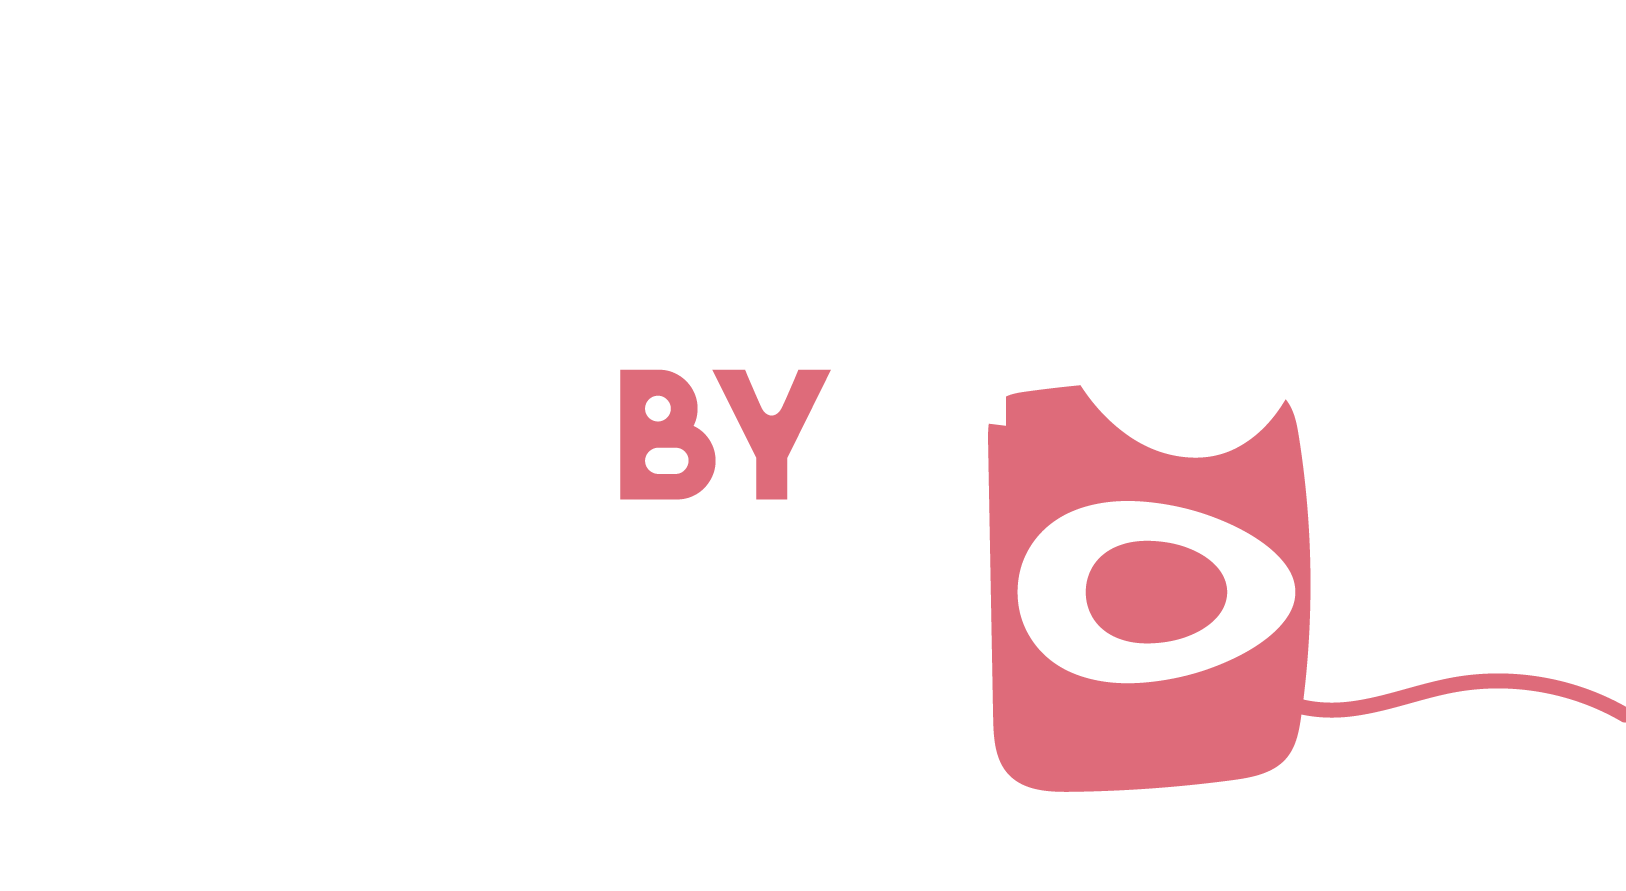 Audio by Hugo